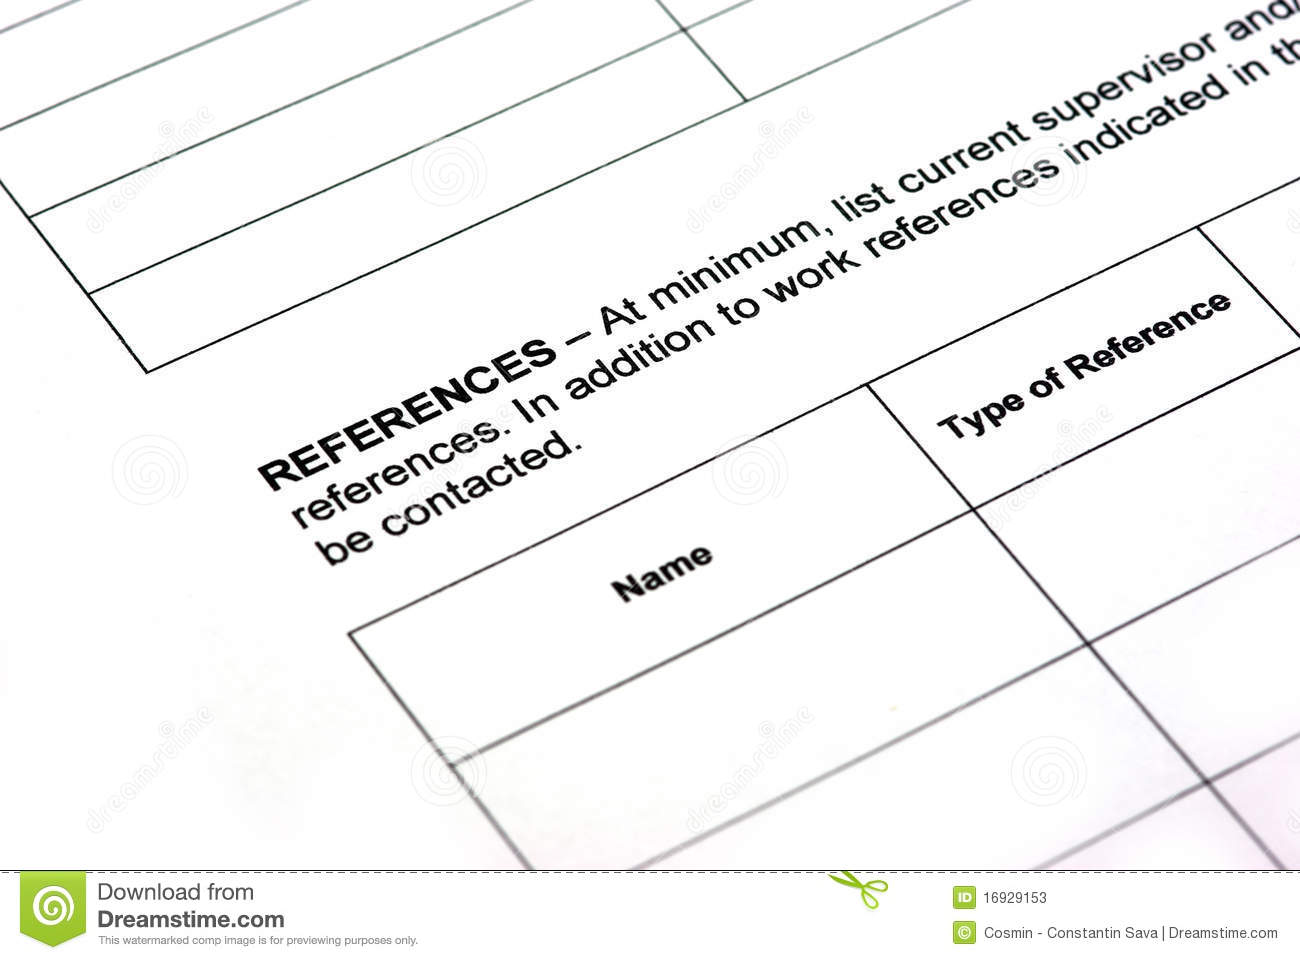 Work references stock image. Image of clipboard, complete